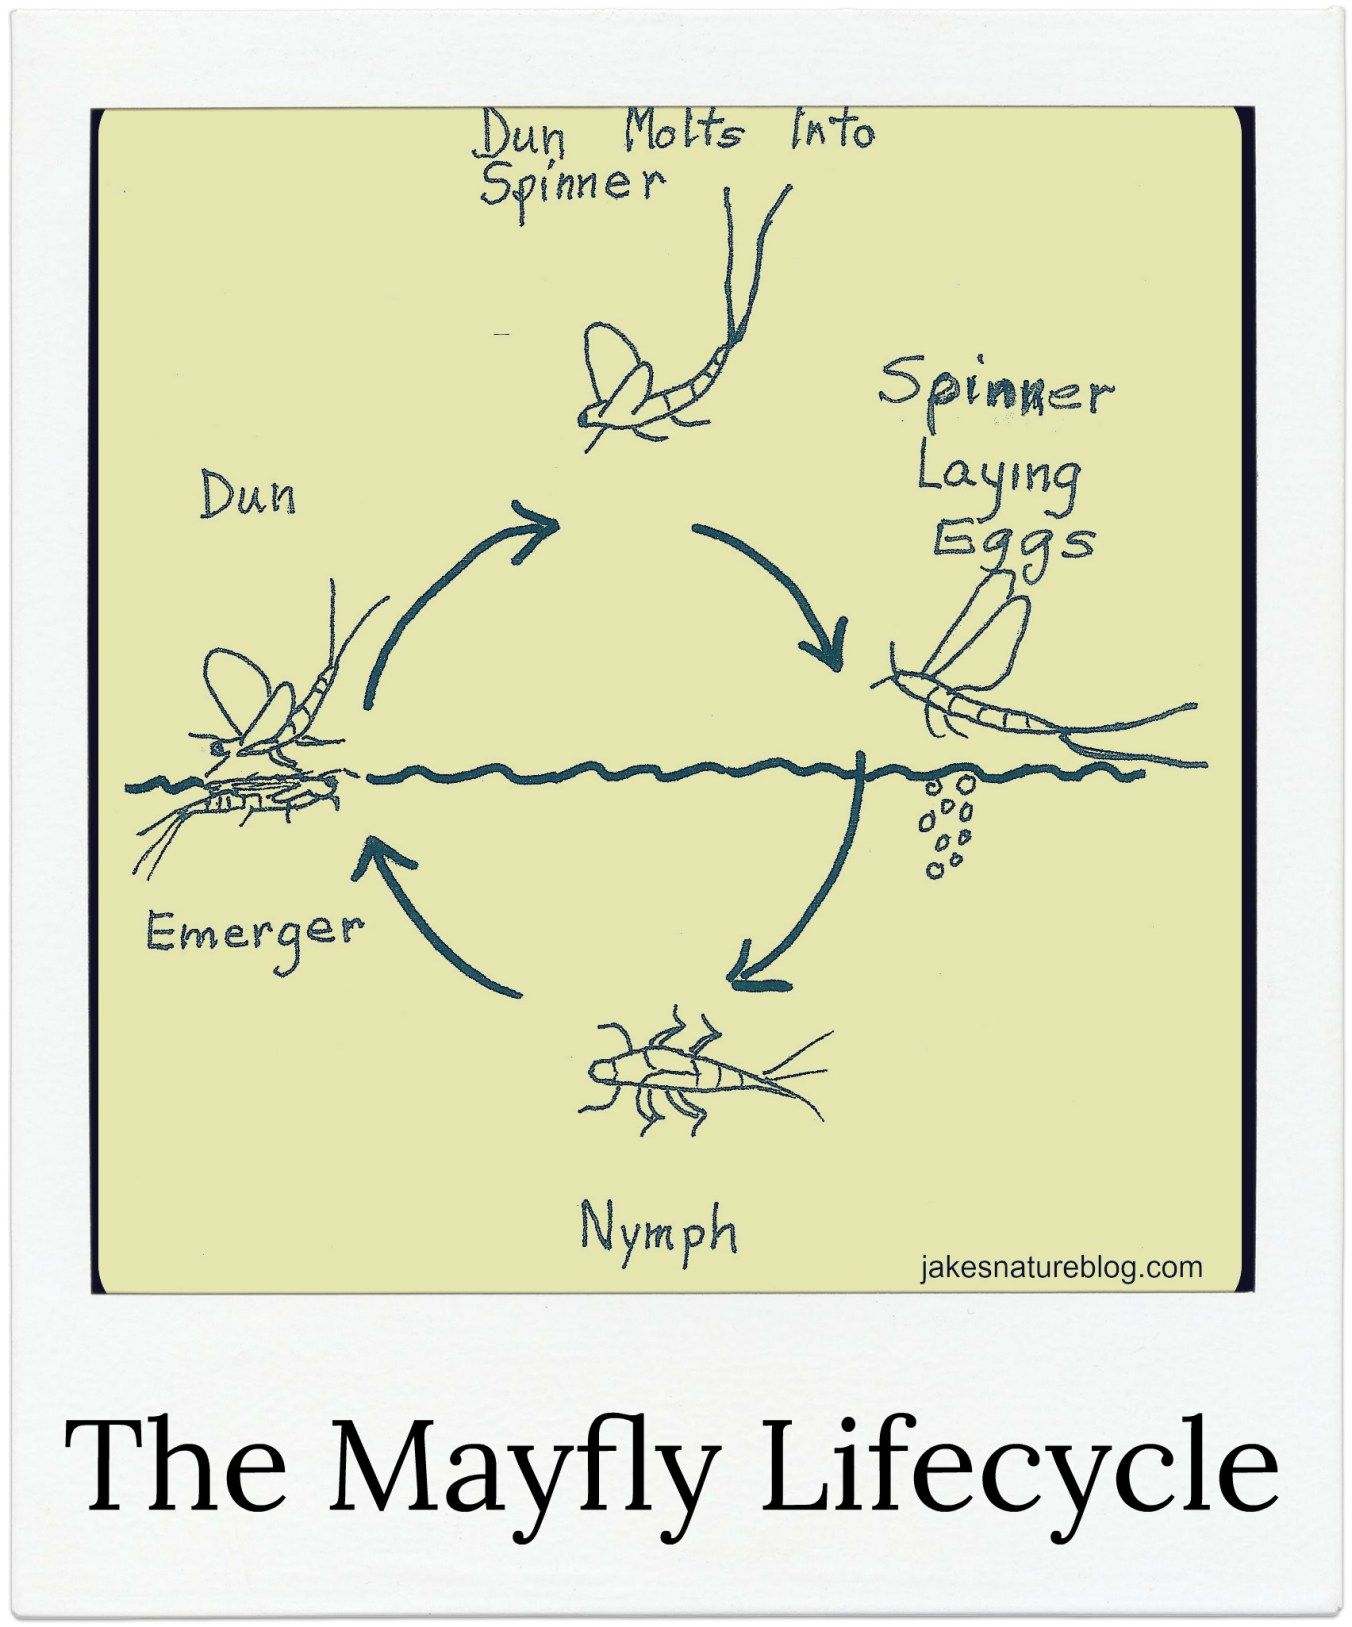 Mayfly Lifecycle Explained For You With A Nice Diagram